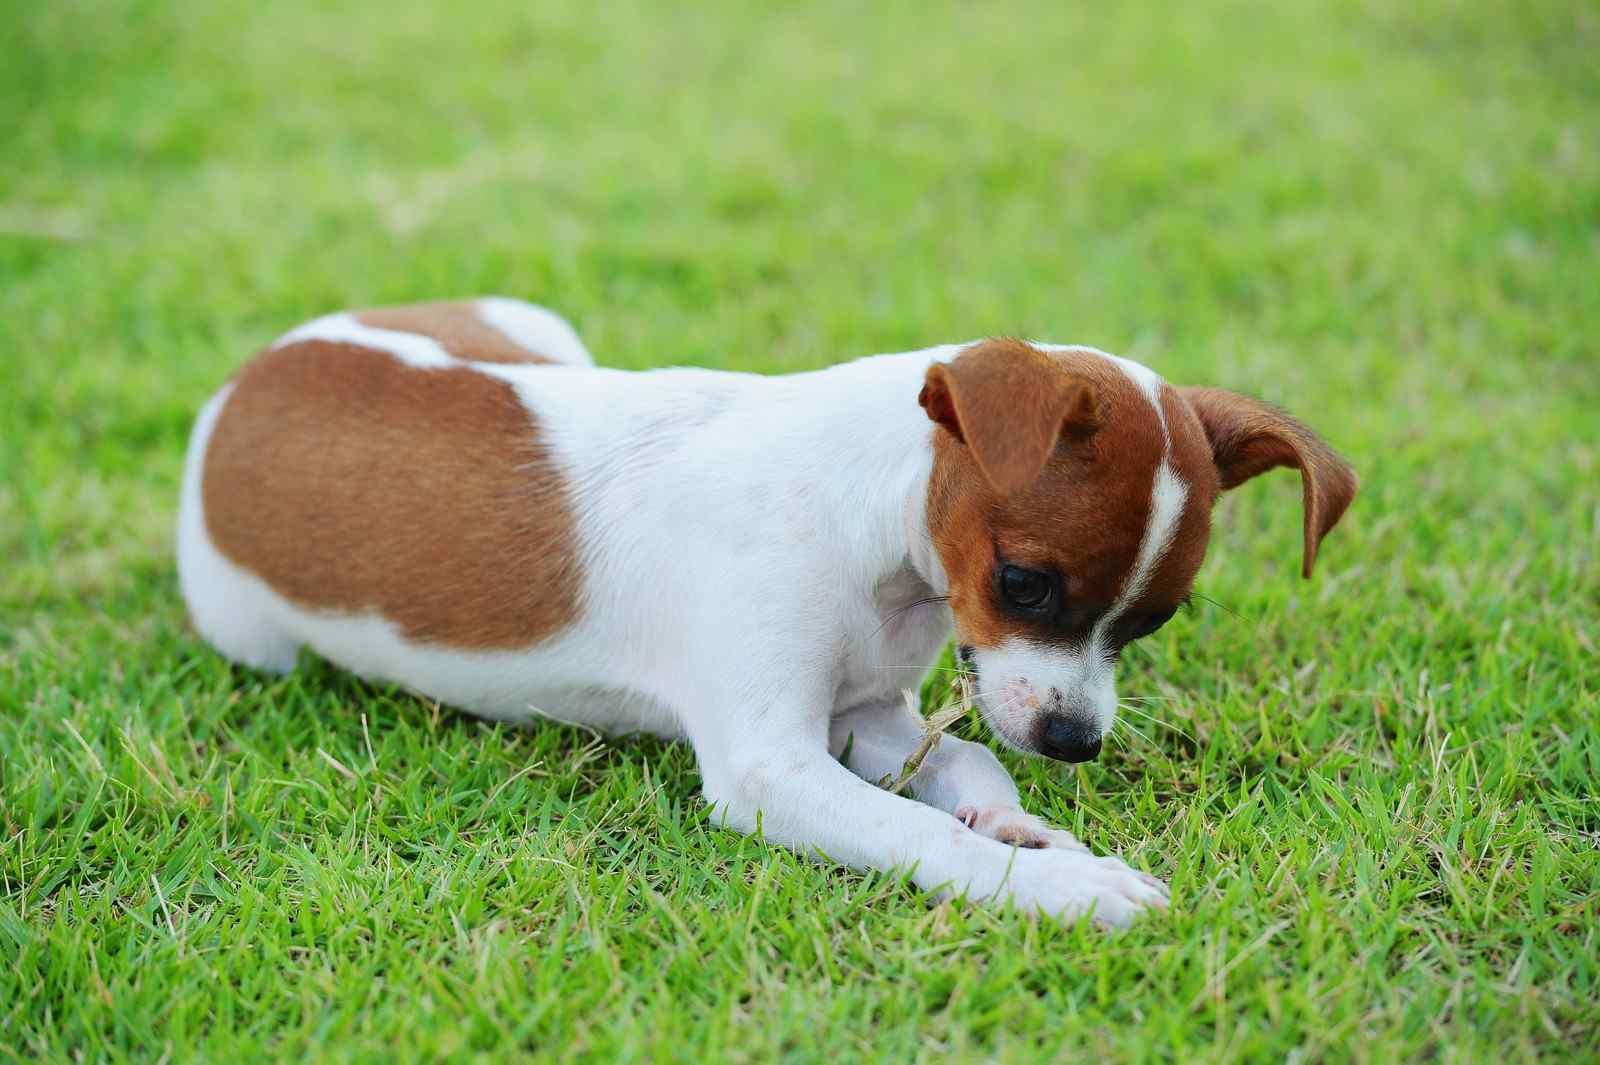 jack russell terrier puppy eating grass